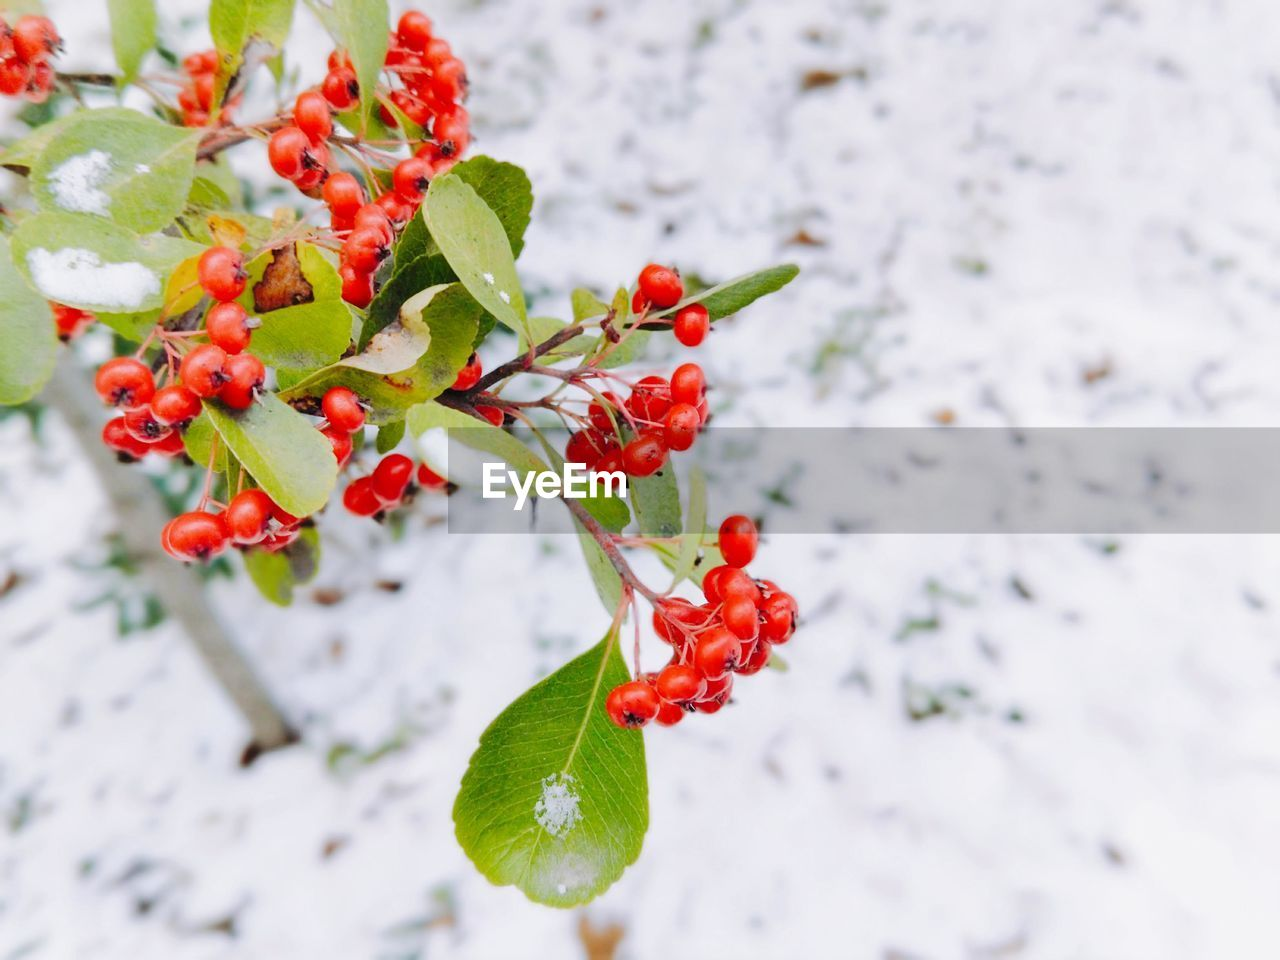 red, fruit, freshness, berry fruit, food, plant part, leaf, food and drink, healthy eating, plant, growth, beauty in nature, close-up, day, nature, no people, focus on foreground, snow, rowanberry, wellbeing, outdoors, ripe, red currant